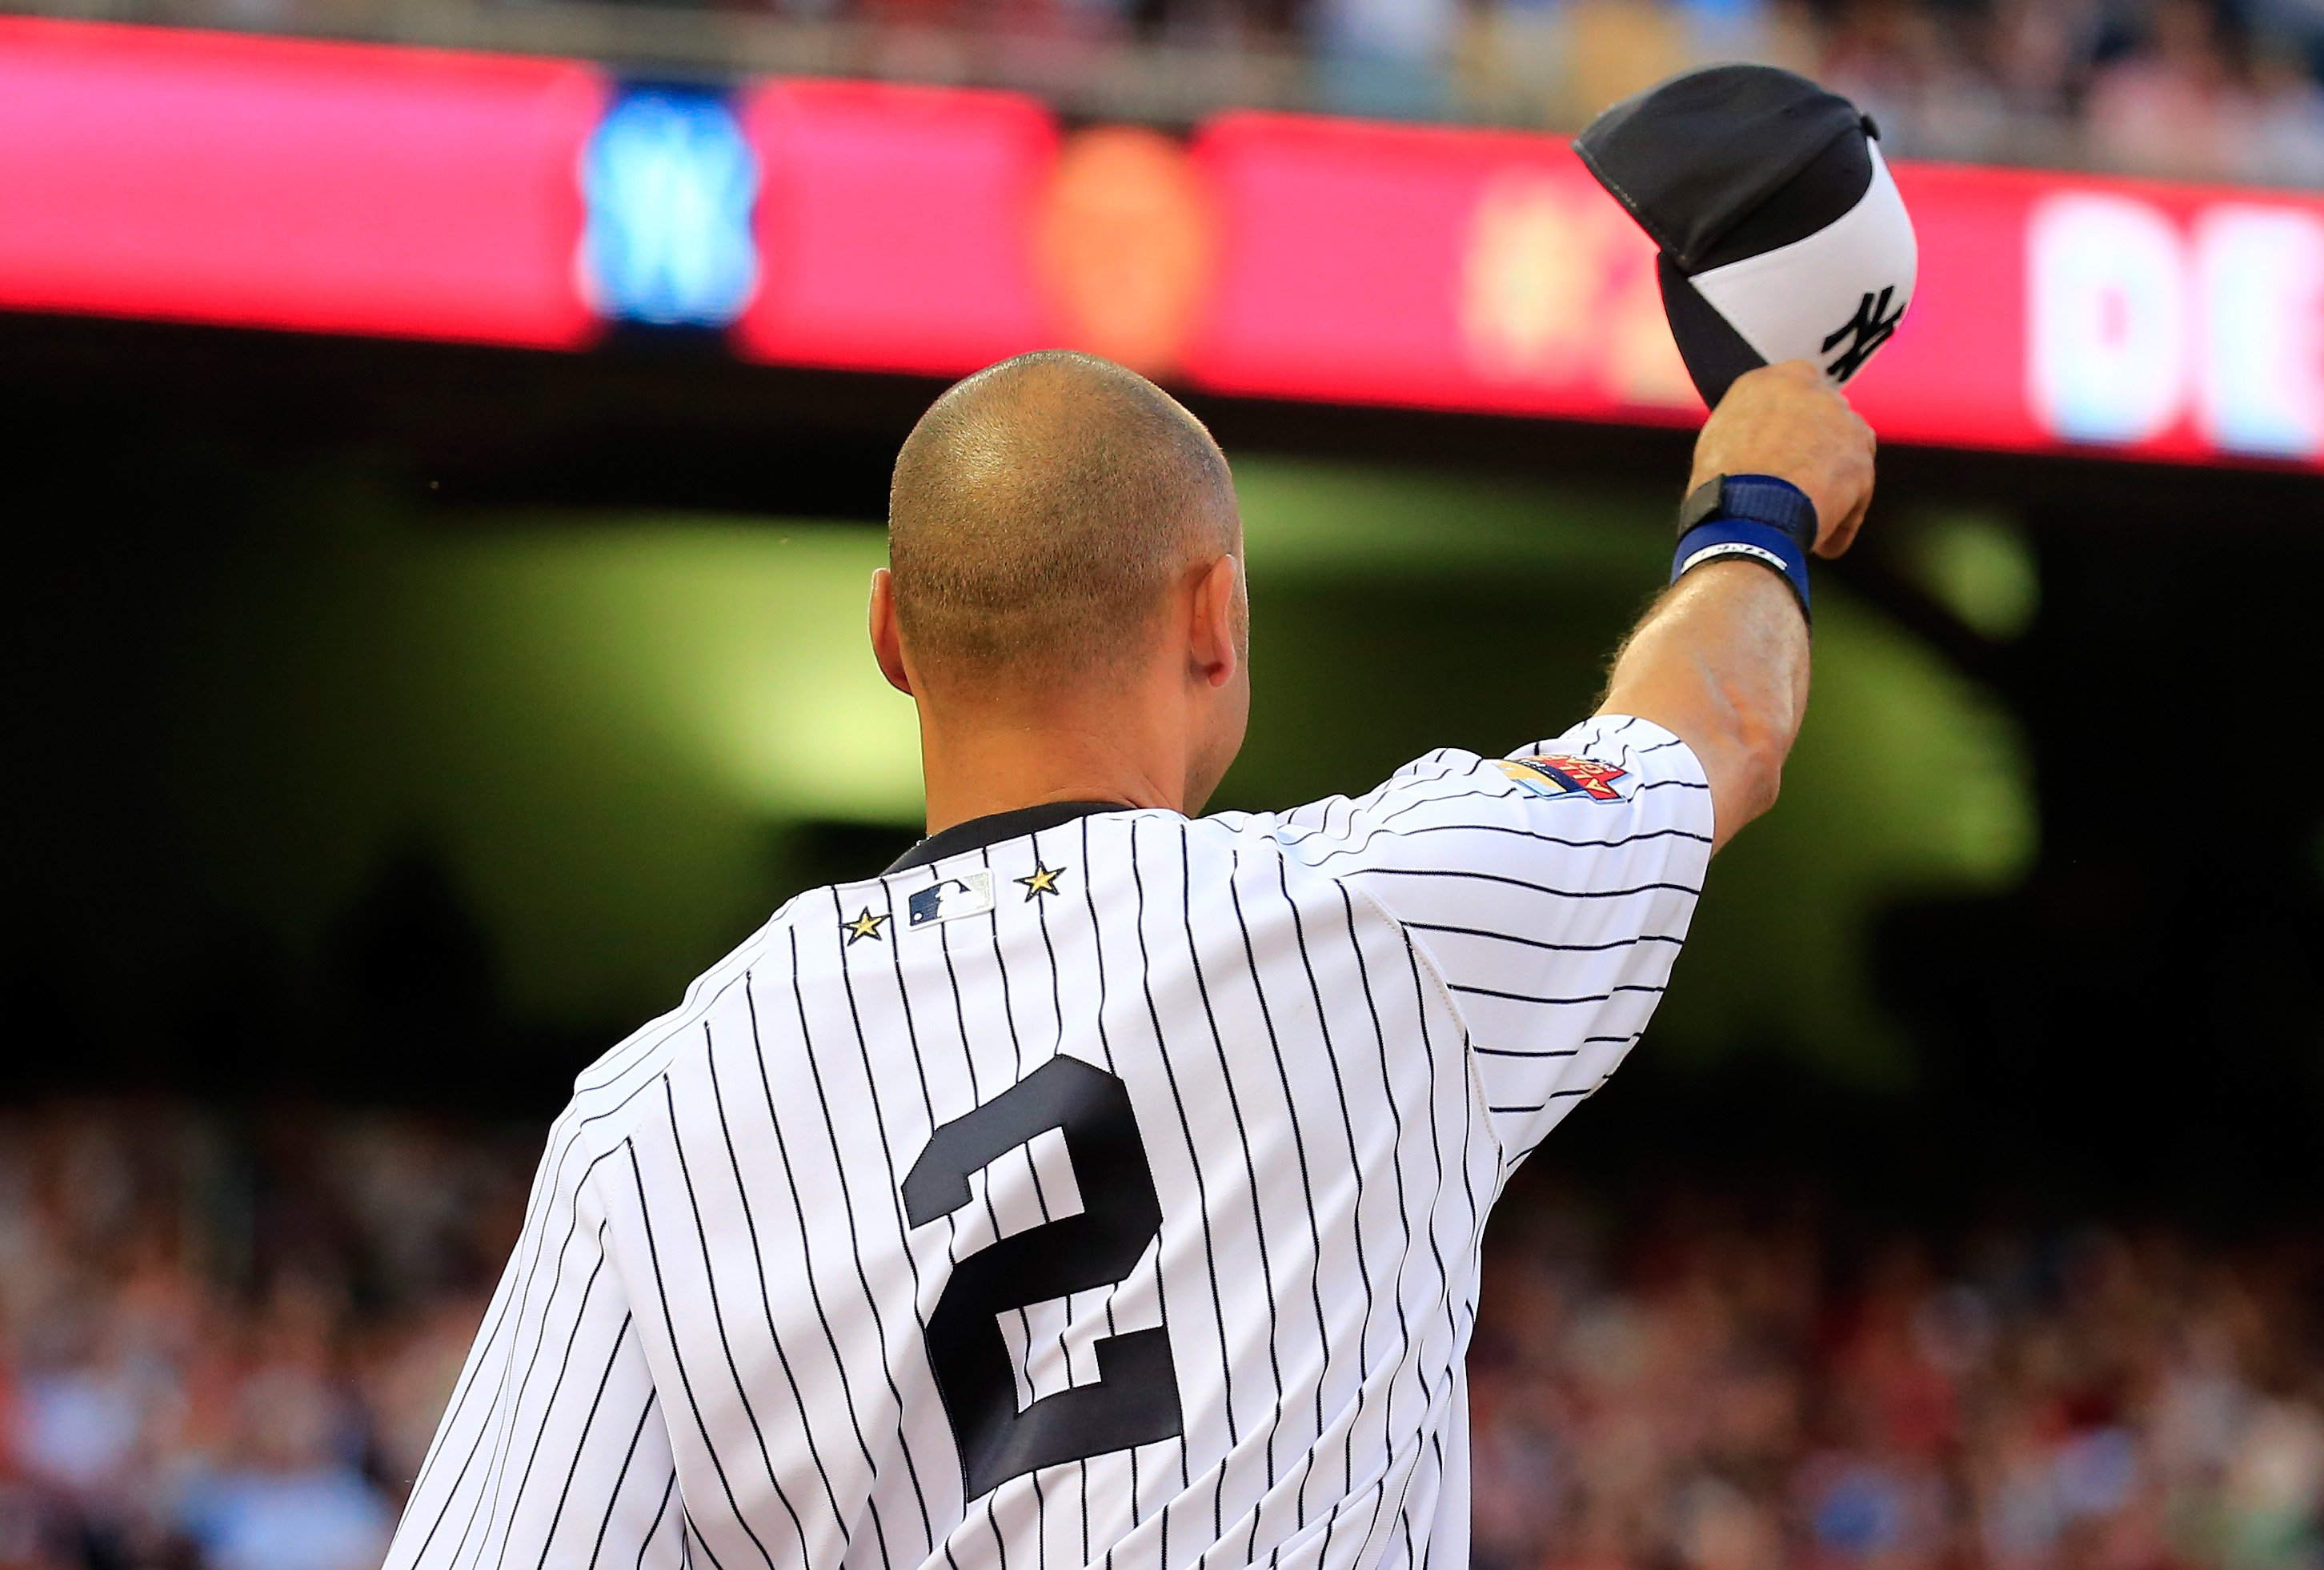 American League All-Star Derek Jeter #2 of the New York Yankees acknowledges the crowd after being pulled in the fourth inning during the 85th MLB All-Star Game at Target Field on July 15, 2014 in Minneapolis.